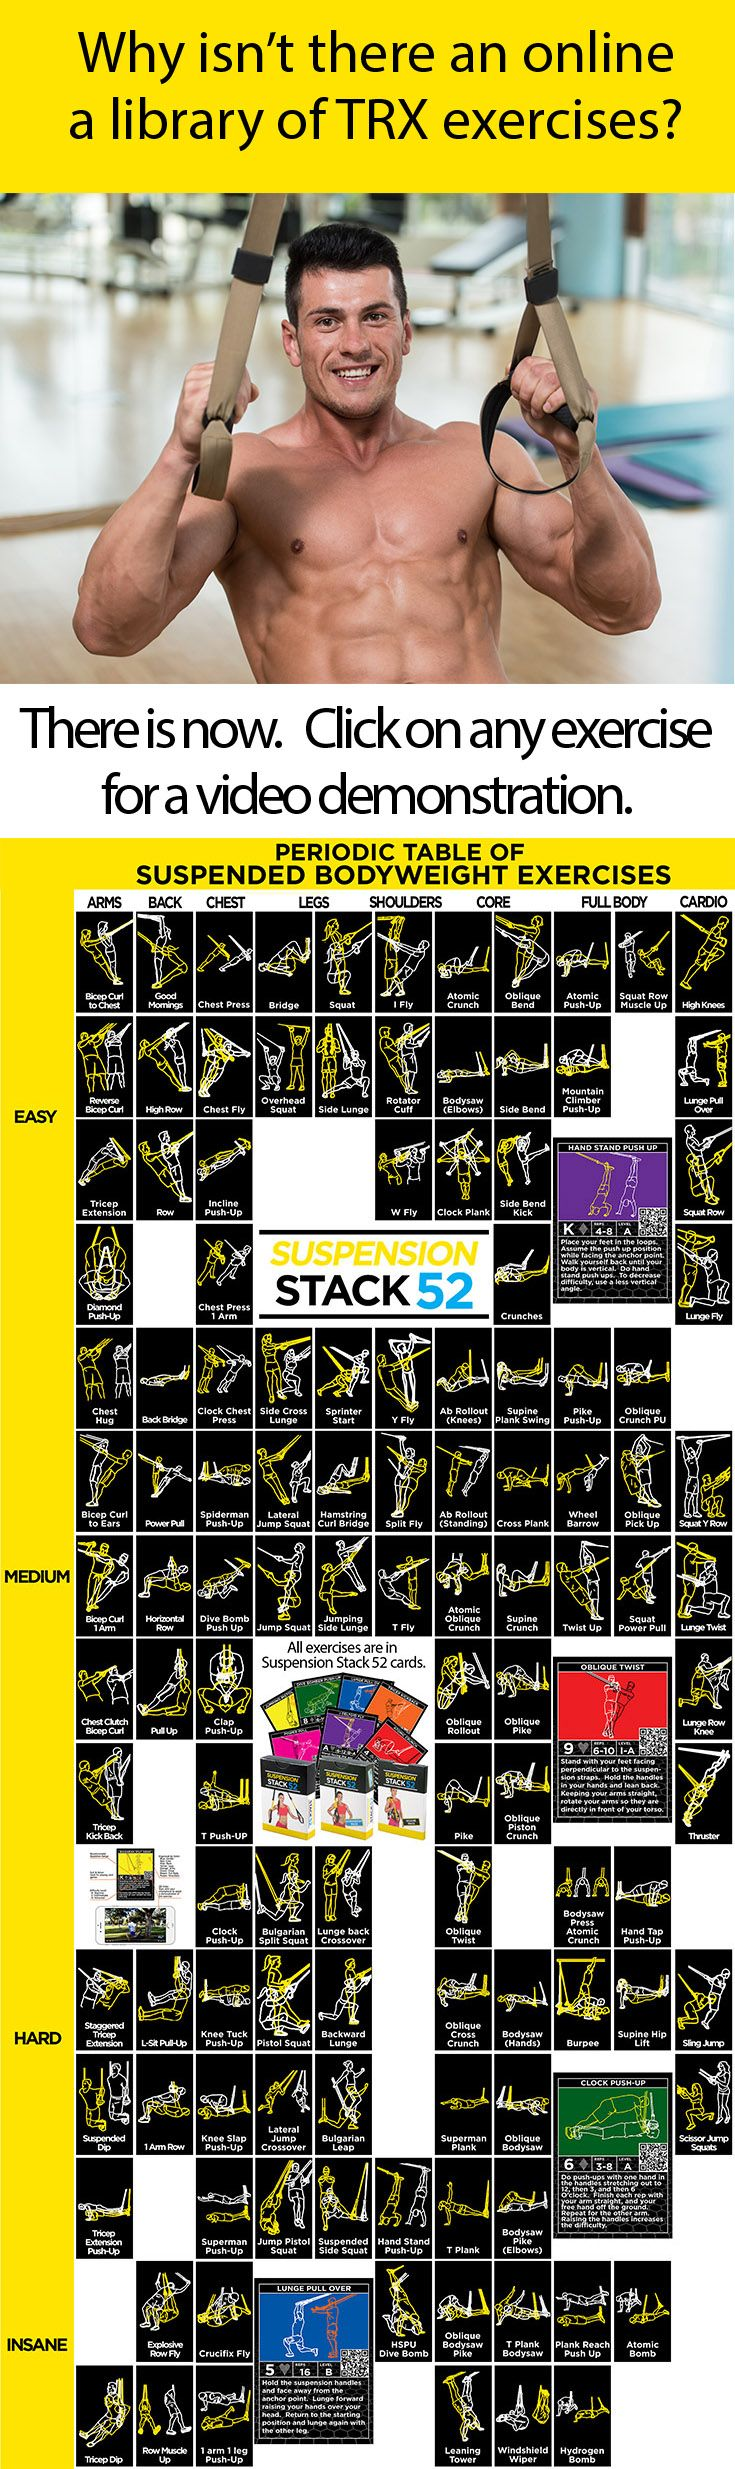 This Periodic Table of Suspension Exercises lists 119 TRX exercises arranged by muscle group and difficulty.  Click on any exercise for a video demonstration.  Enjoy!                                                                                                                                                                                 More